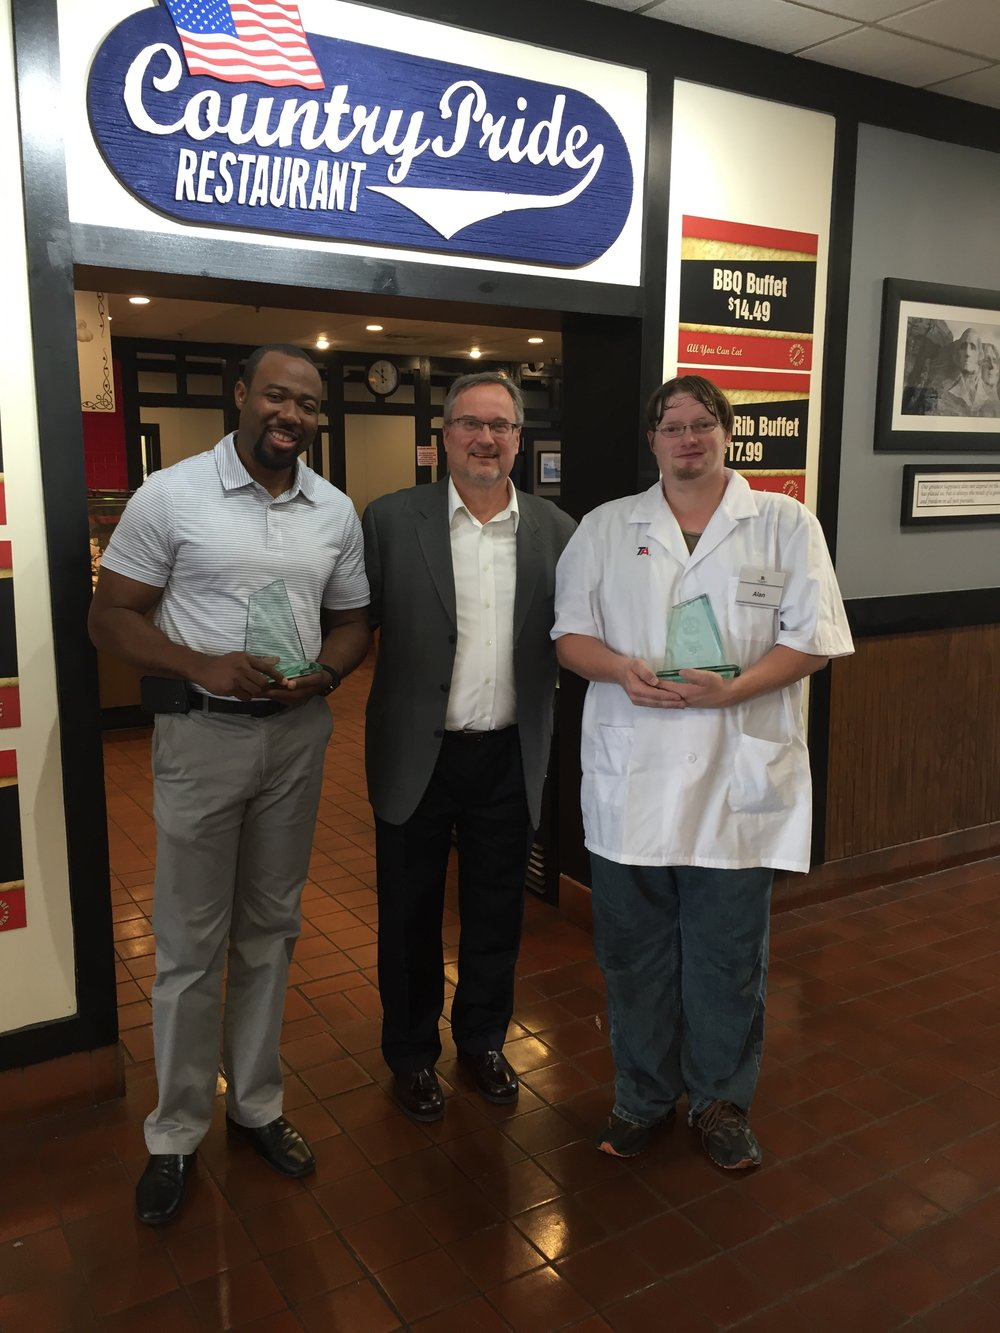 Tom Liutkus (center), senior vice president of marketing and public relations for TravelCenters of America, presented the Harriet Tubman award to Debo Adepiti (left), TA general manager at Jessup, and Alan Bailey (right), porter.